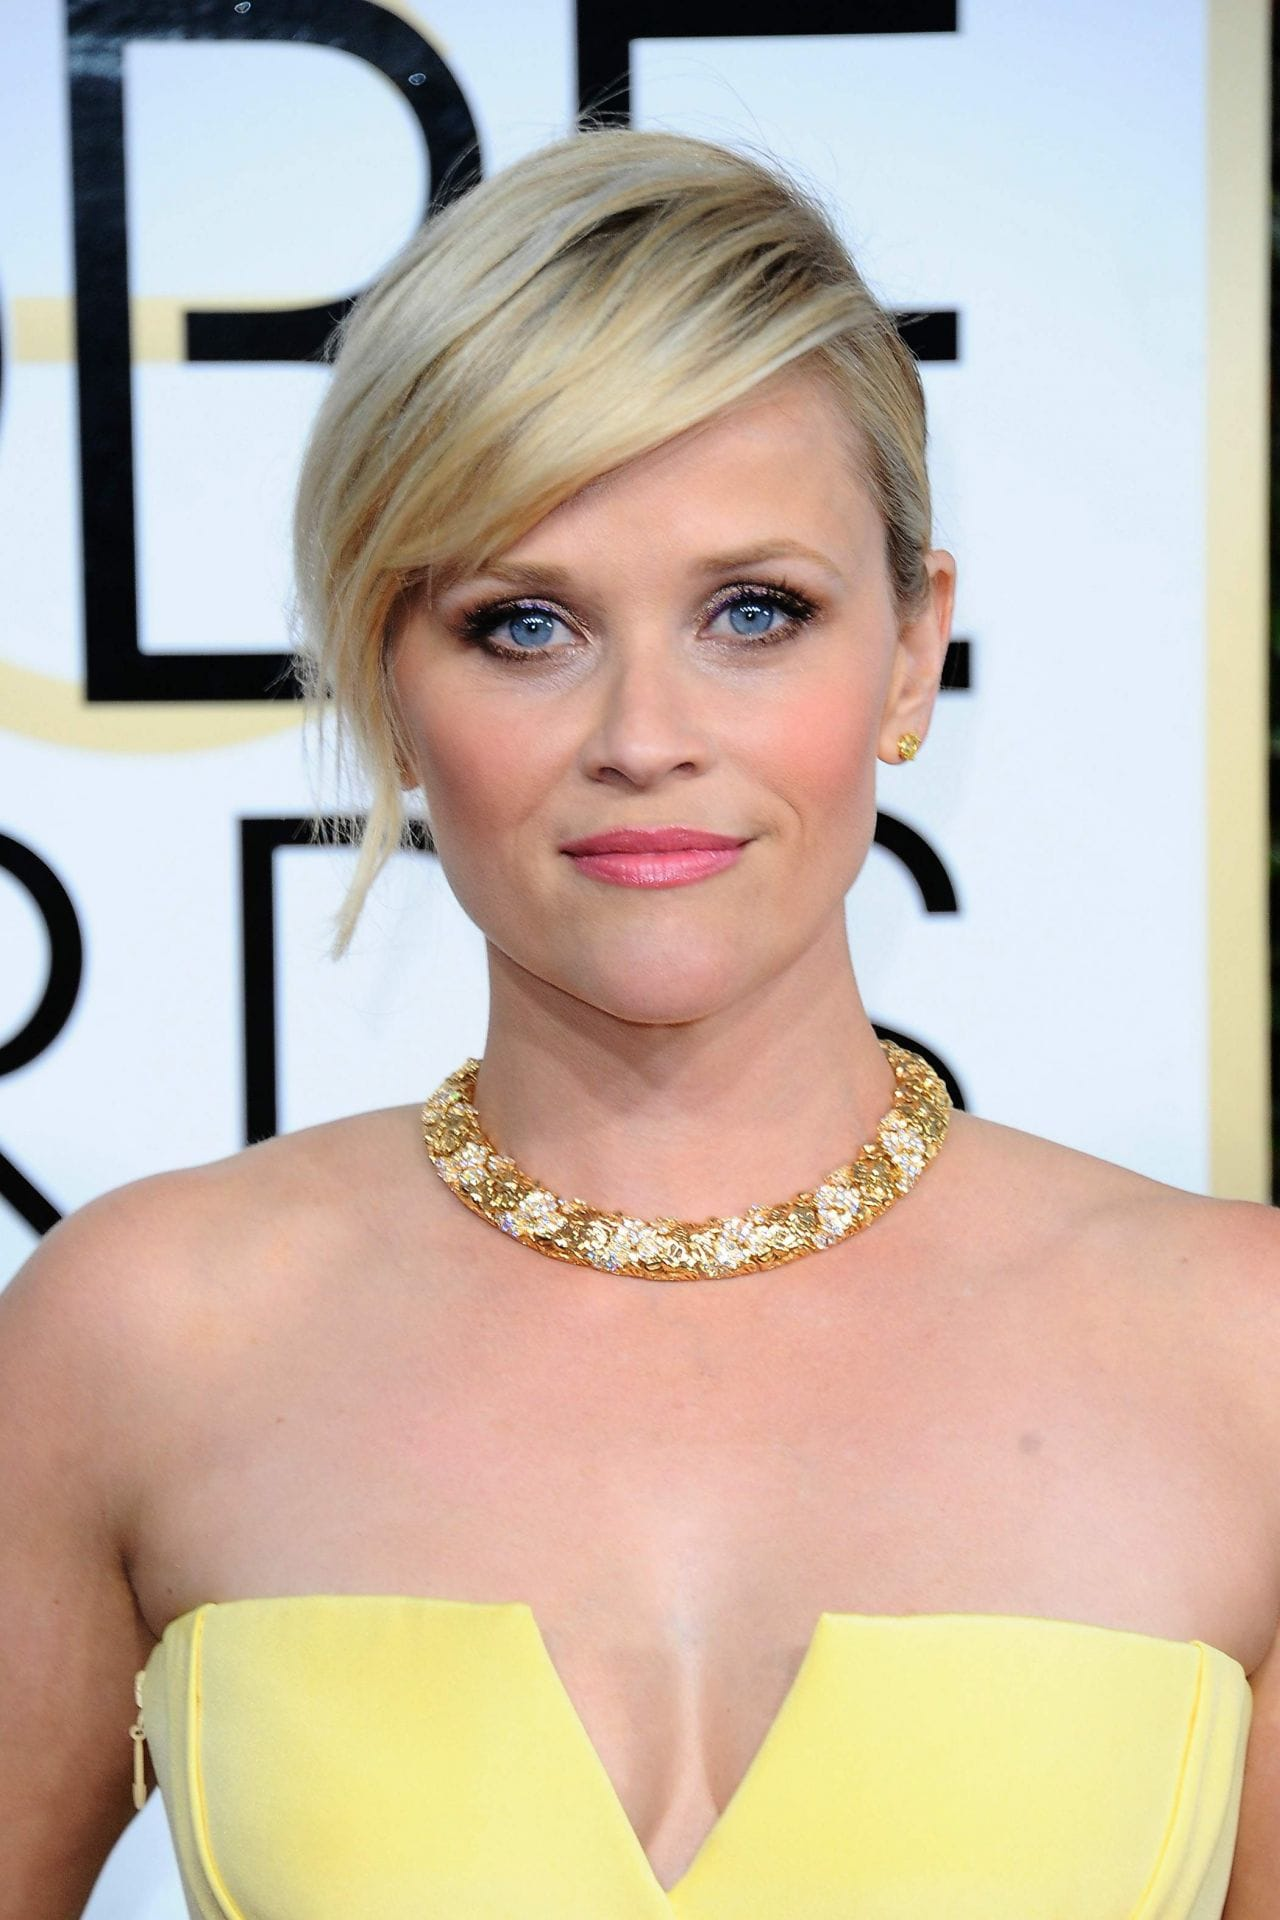 Reese-Witherspoon-trẻ-da-bí mật